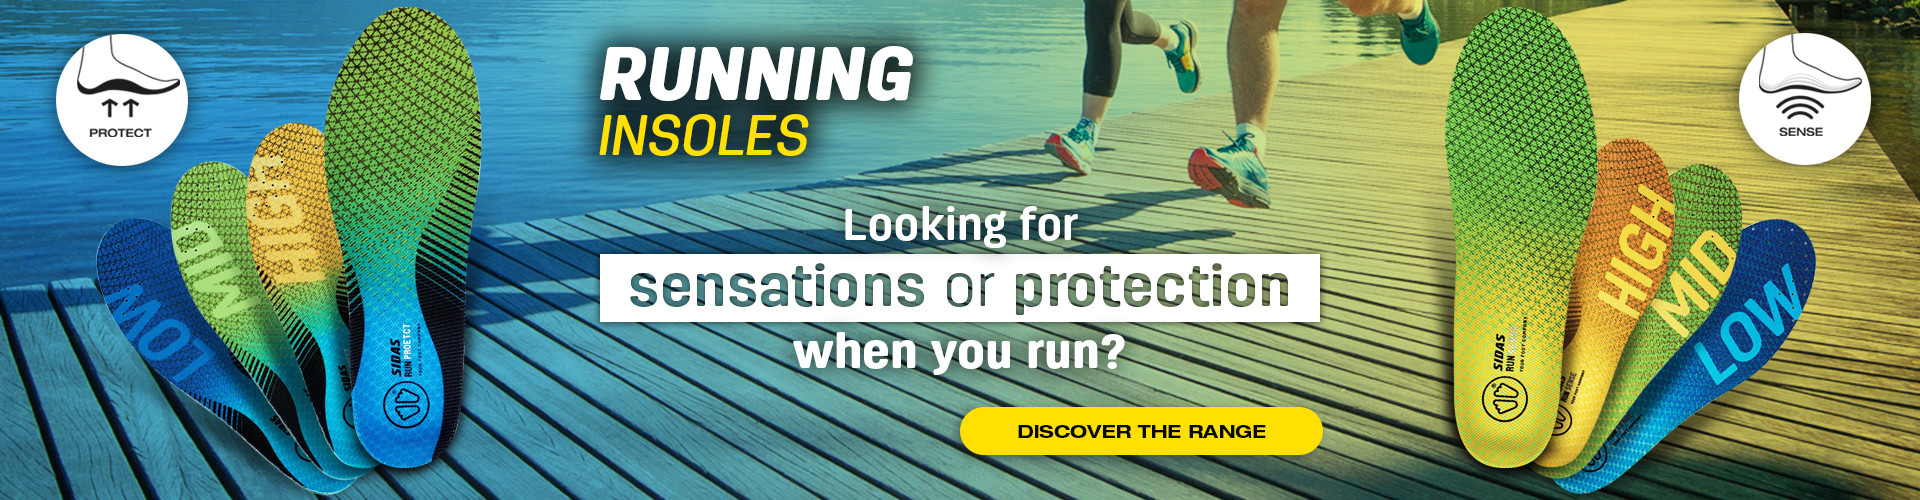 Looking for sensations or protection when you run? Find your insoles !